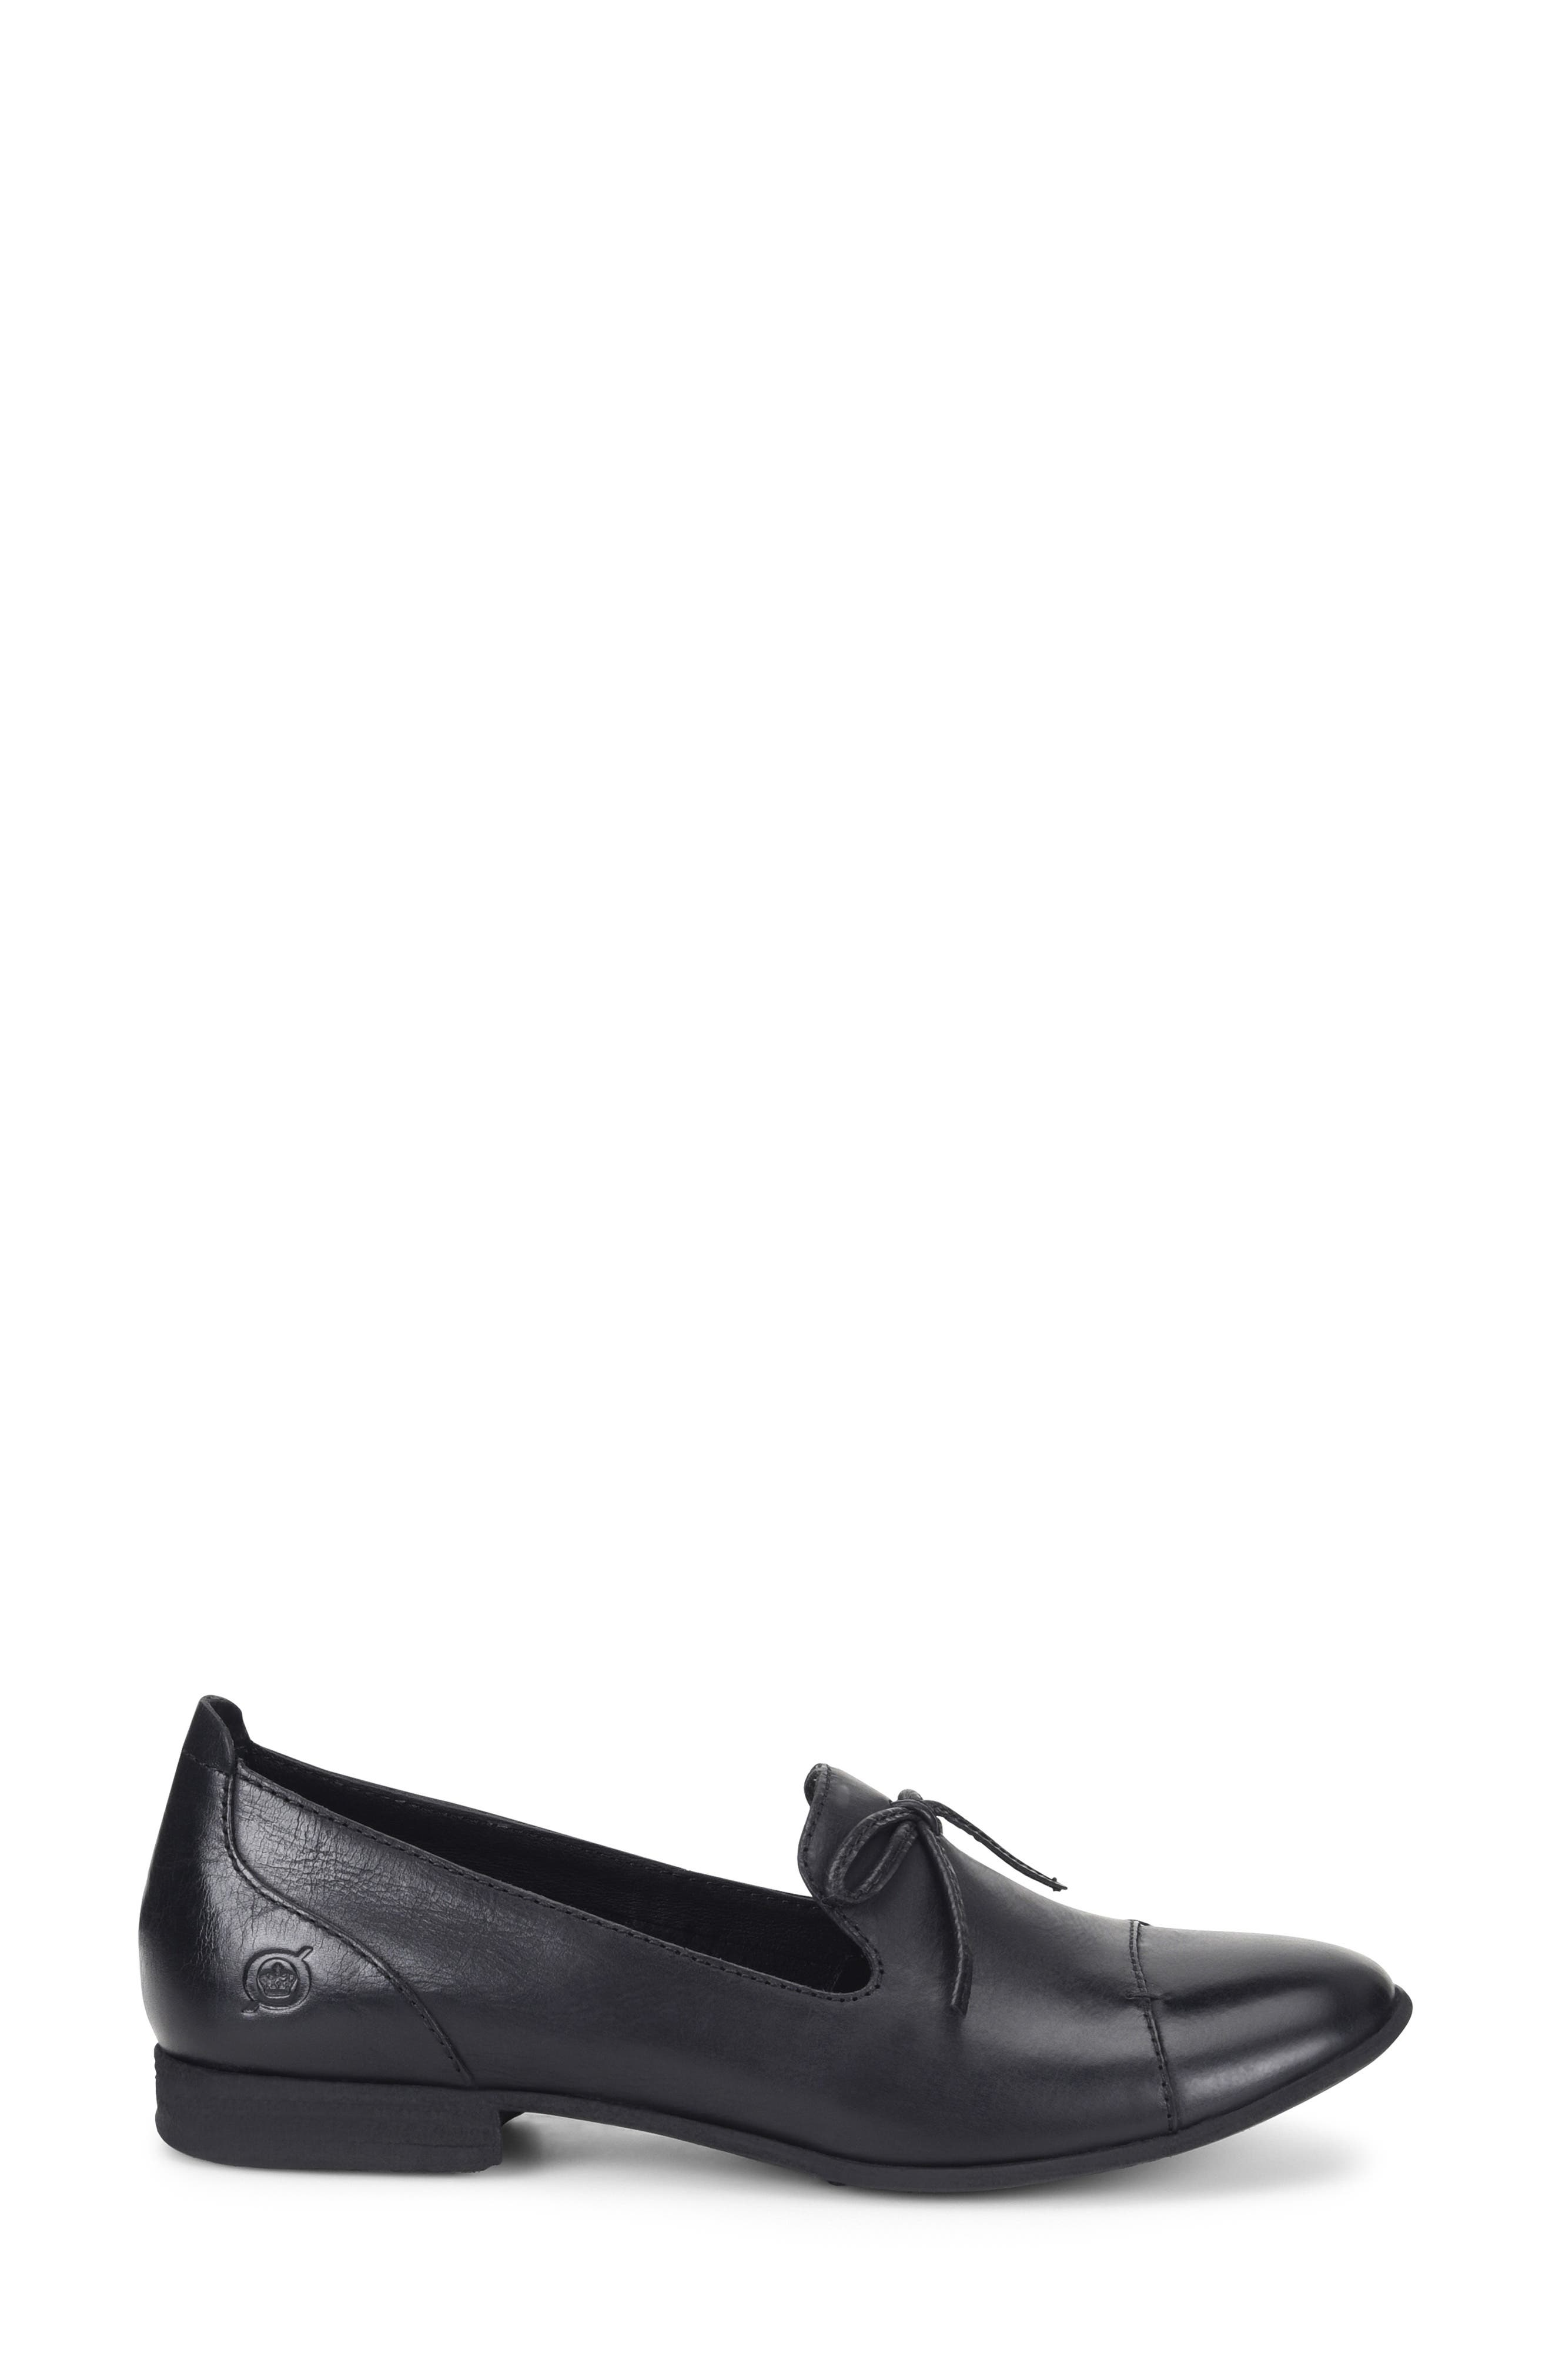 Gallatin Loafer,                             Alternate thumbnail 3, color,                             BLACK LEATHER